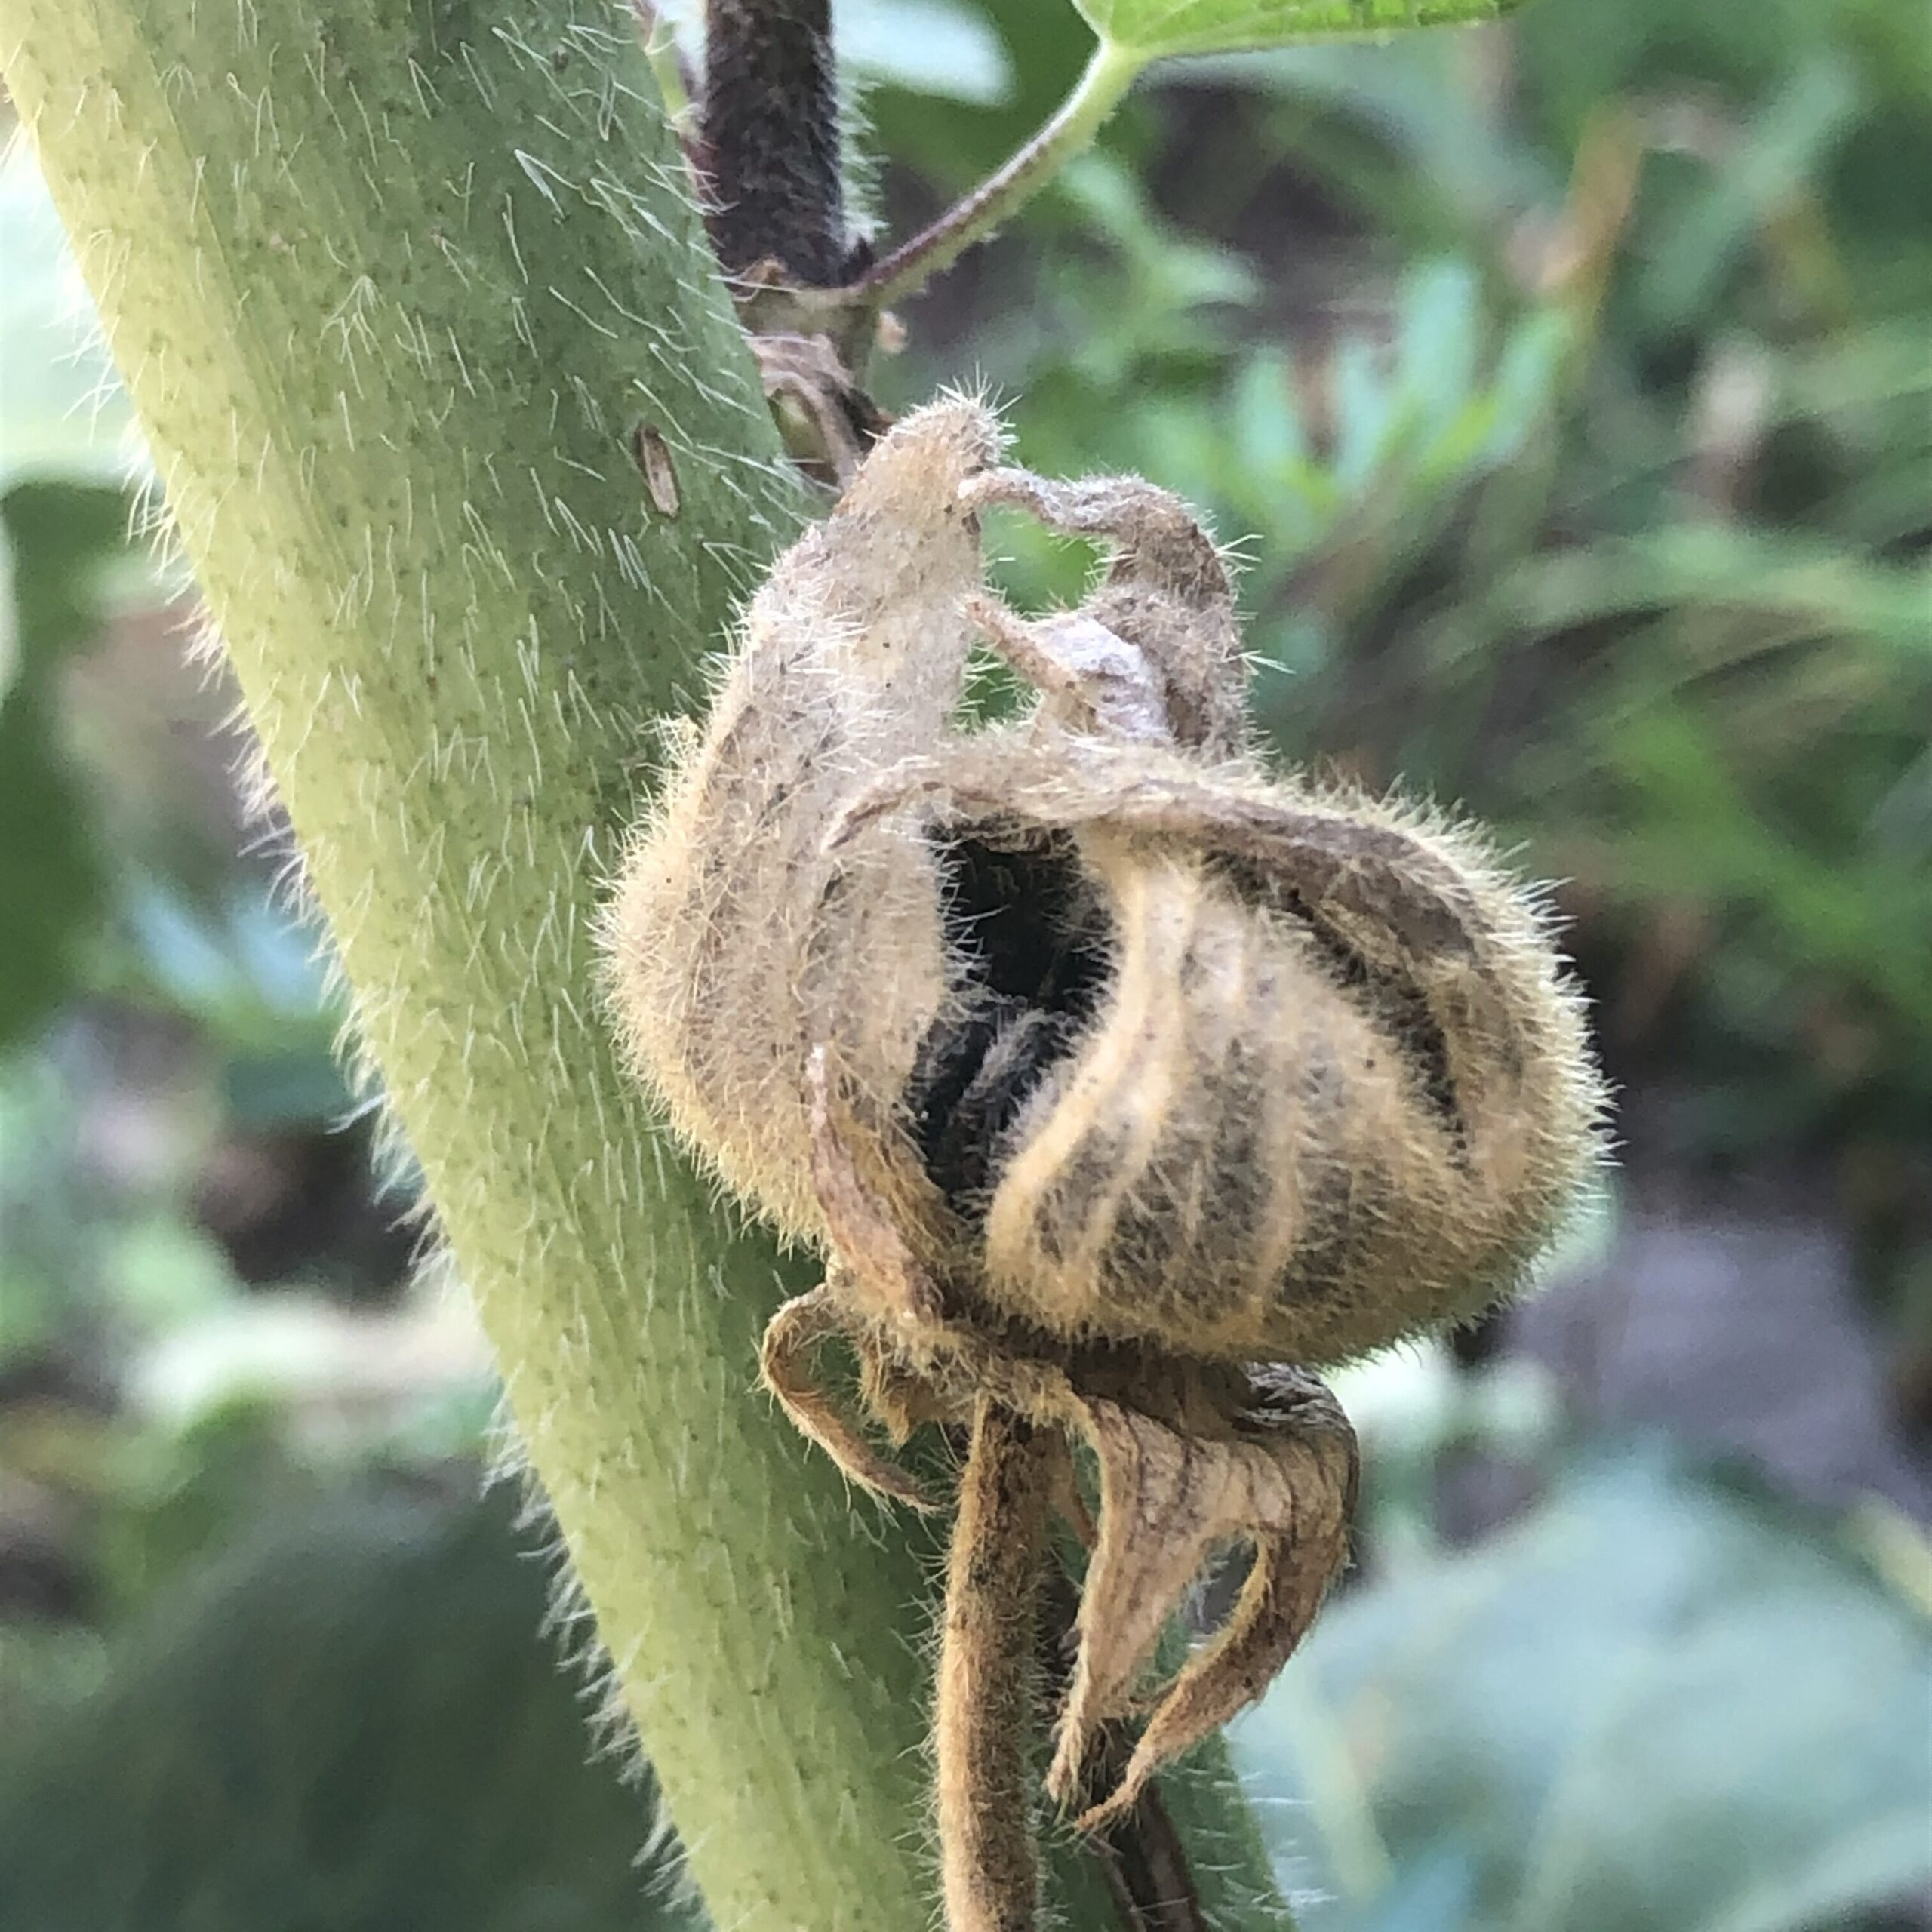 Hollyhock Seed Pod Collection 2020